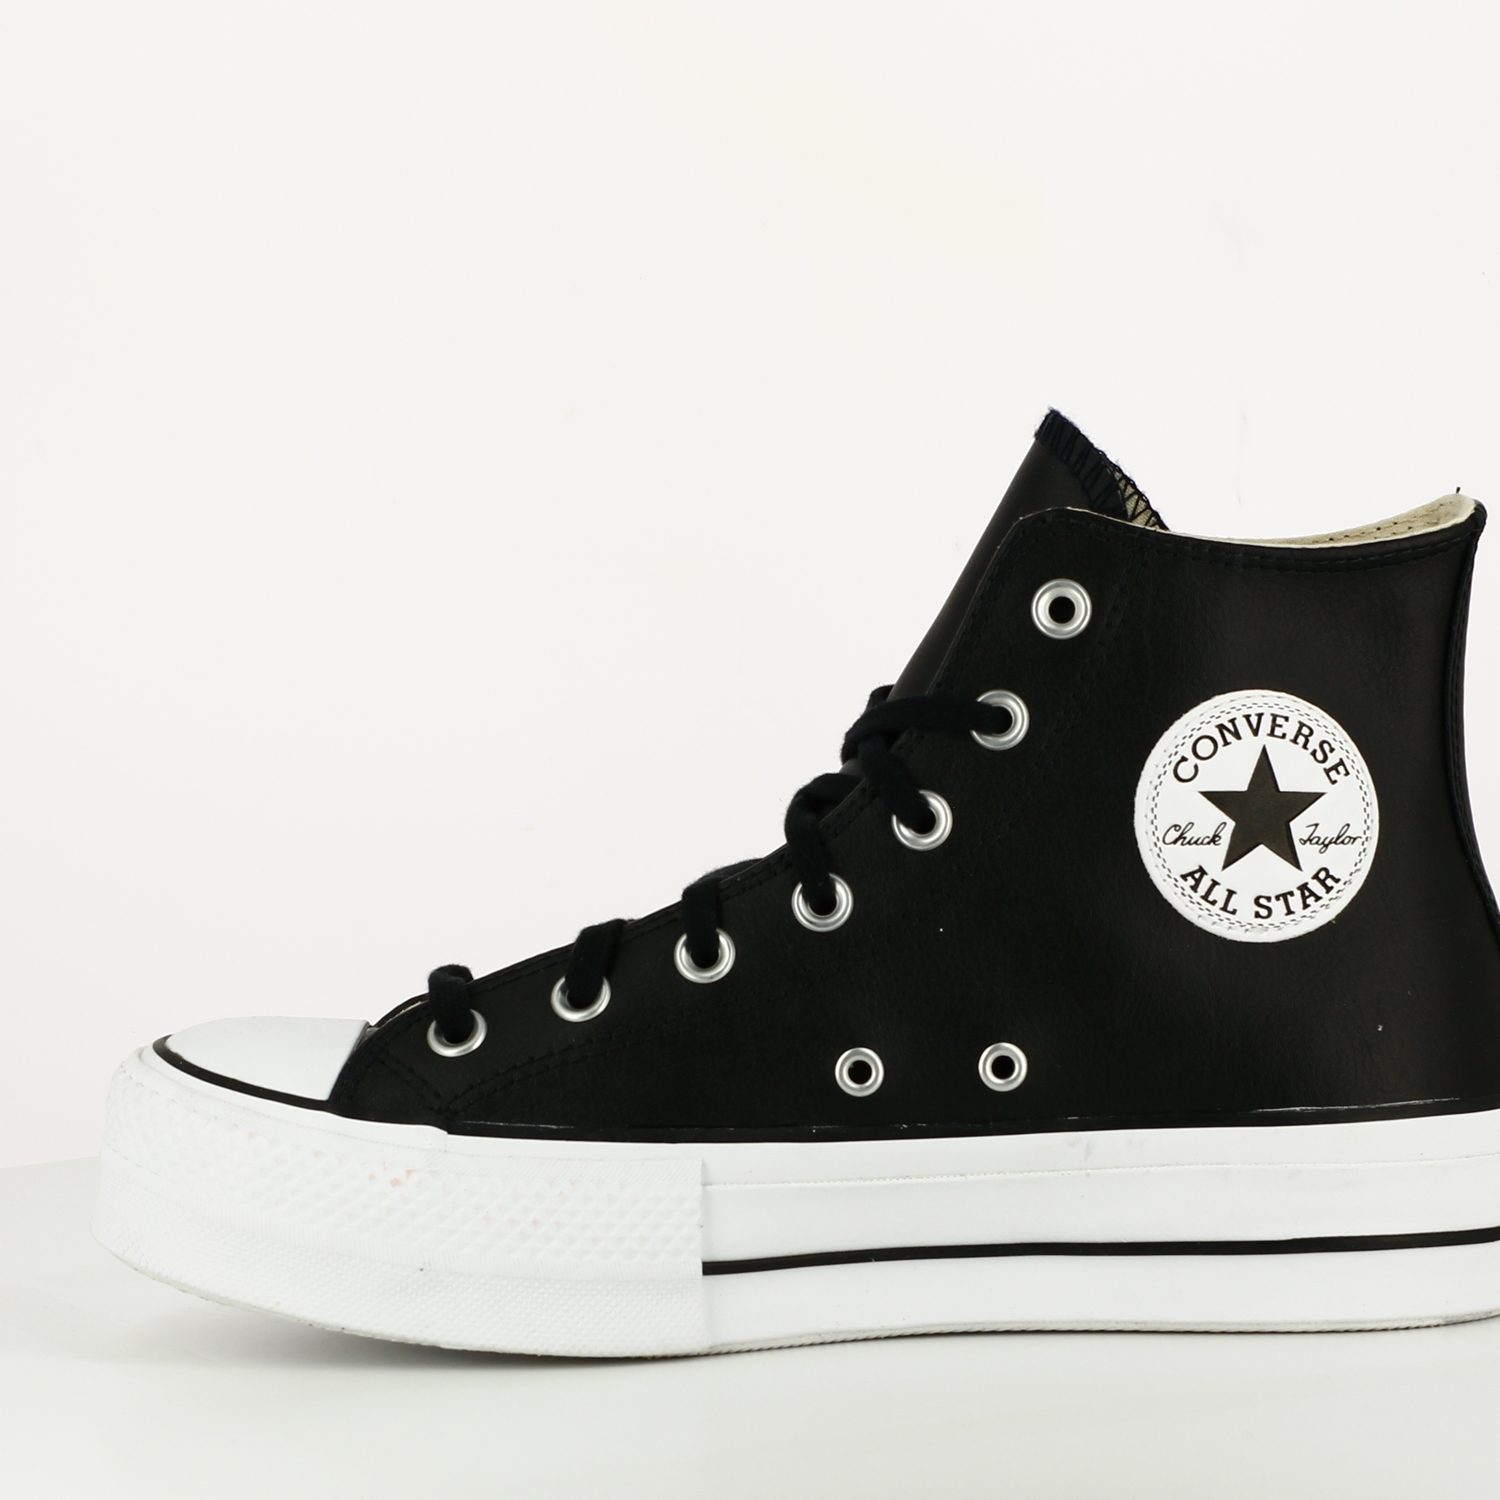 Chuck Taylor All Star Lift Leather High Top Black